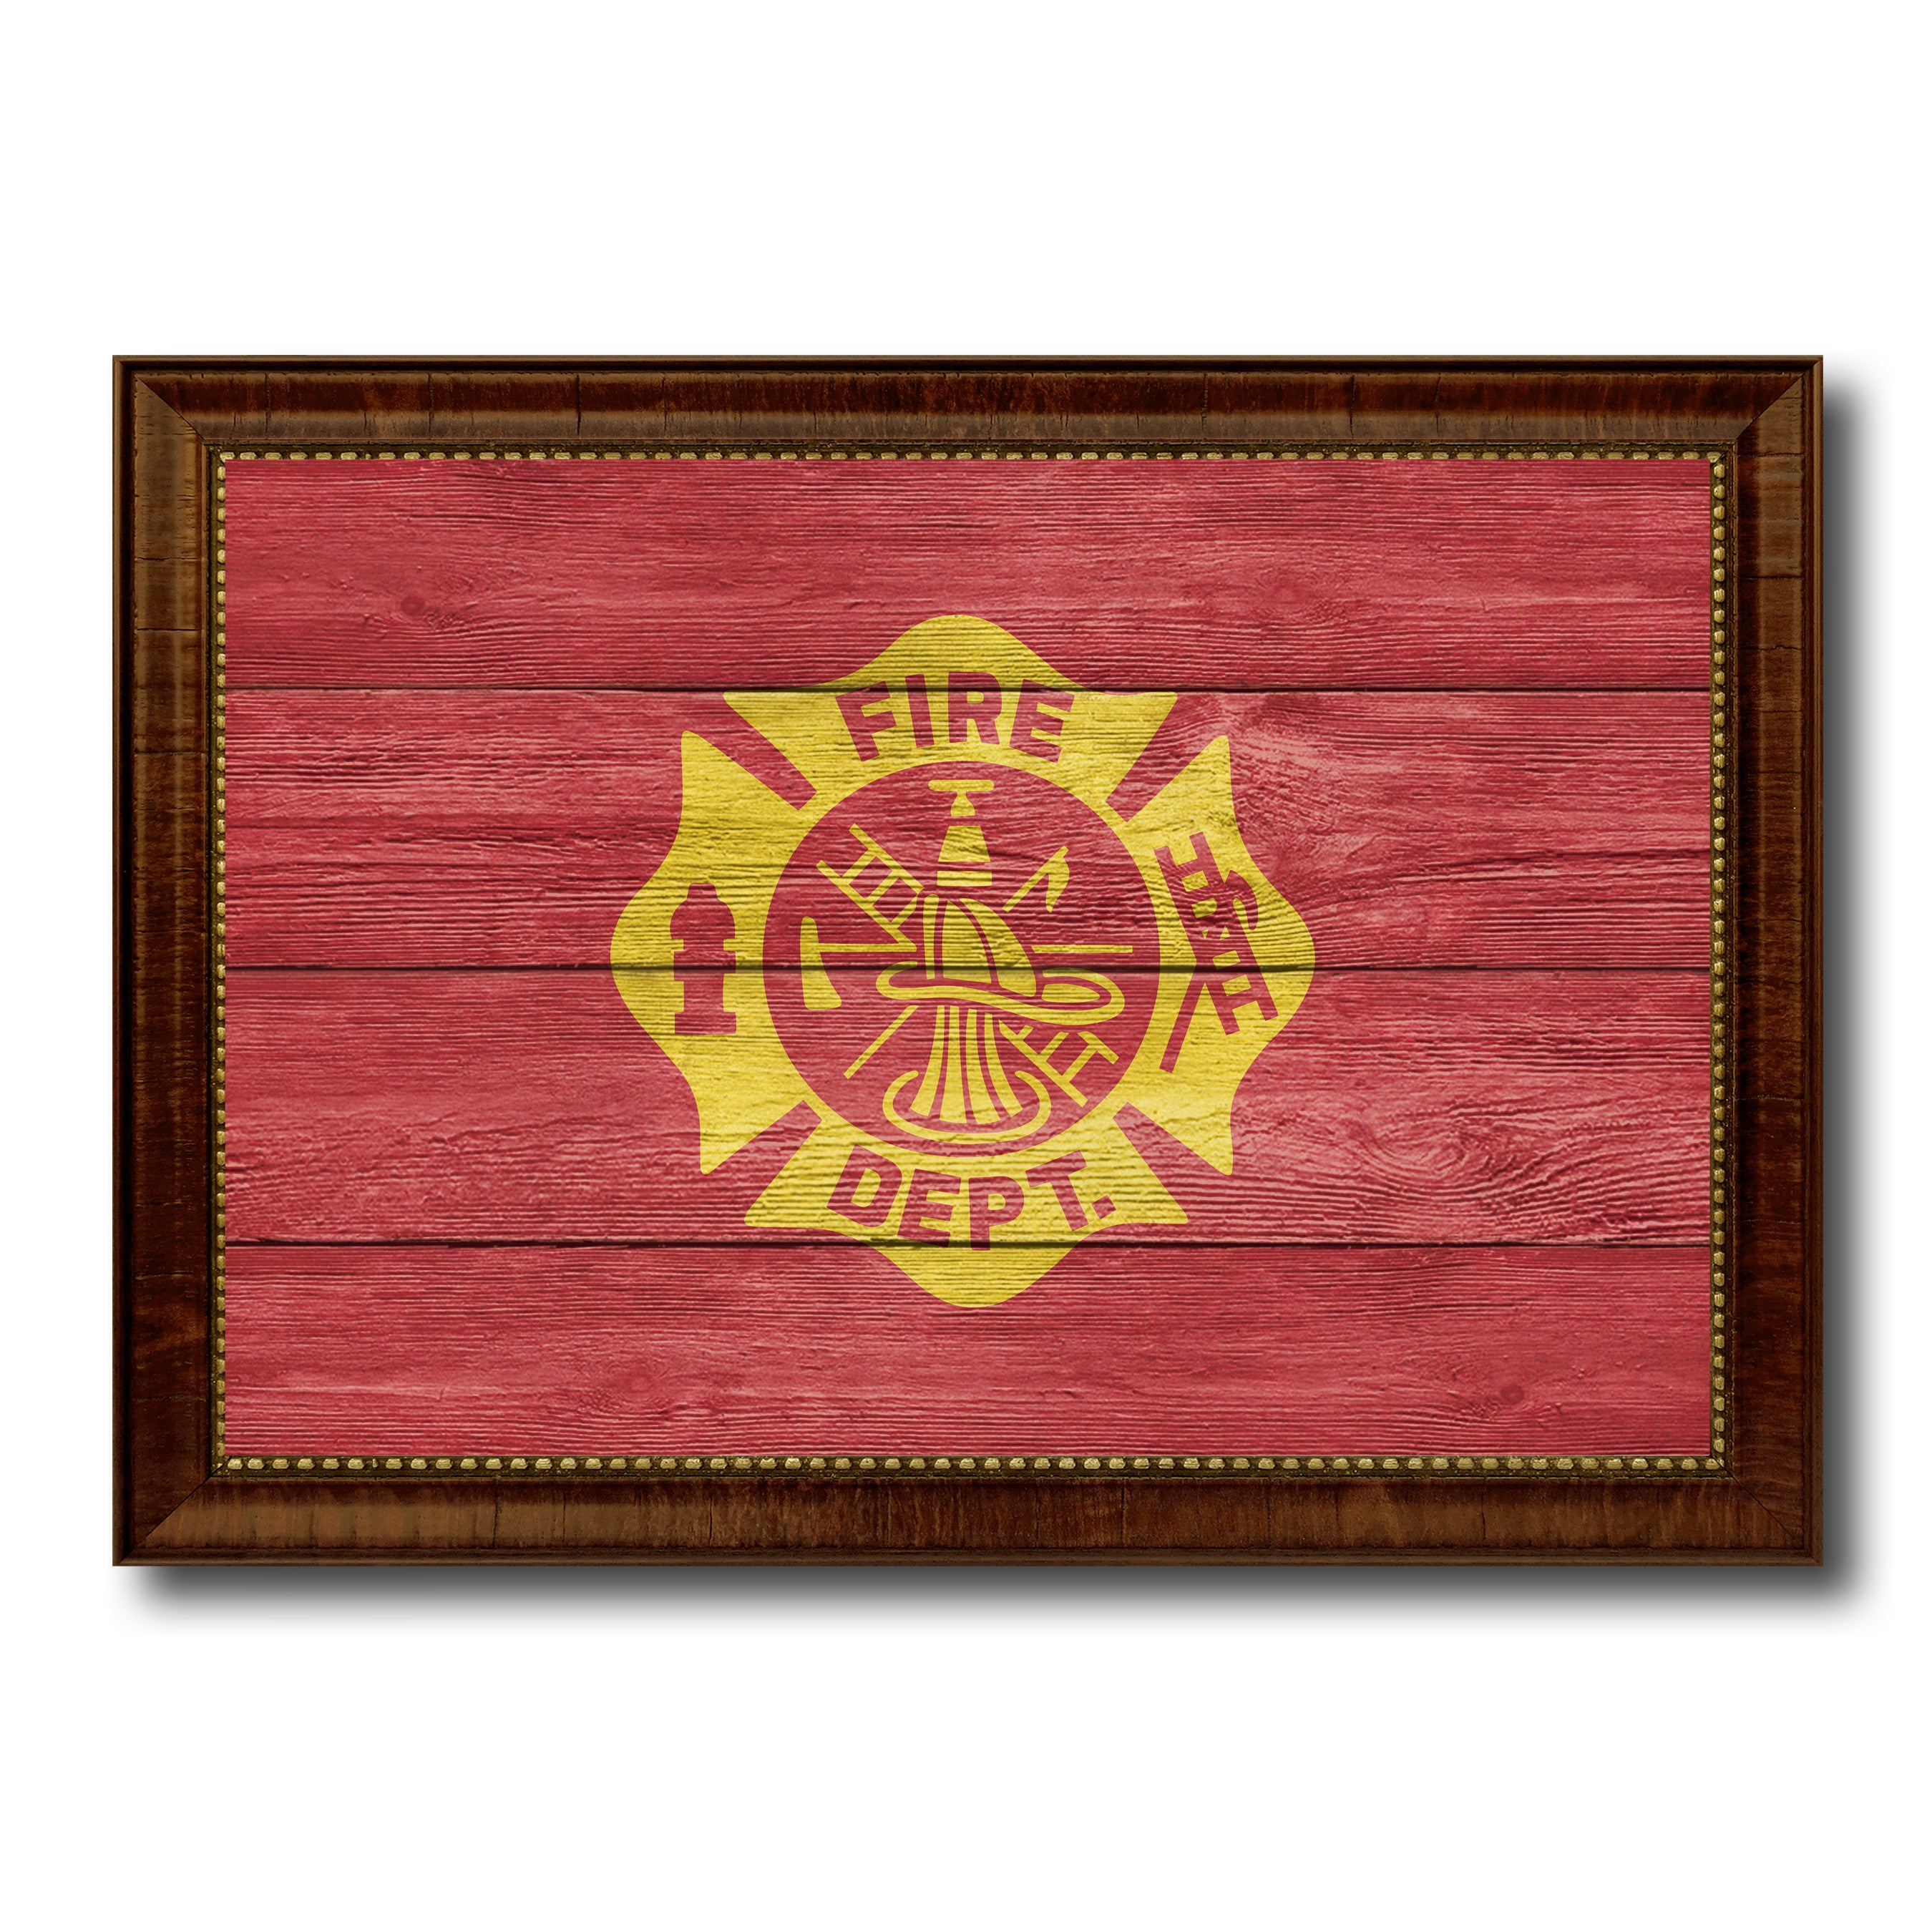 Fire Department Fire Fighter USA Flag Texture Canvas Print with Brown Picture Frame Home Decor Wall Art Gifts